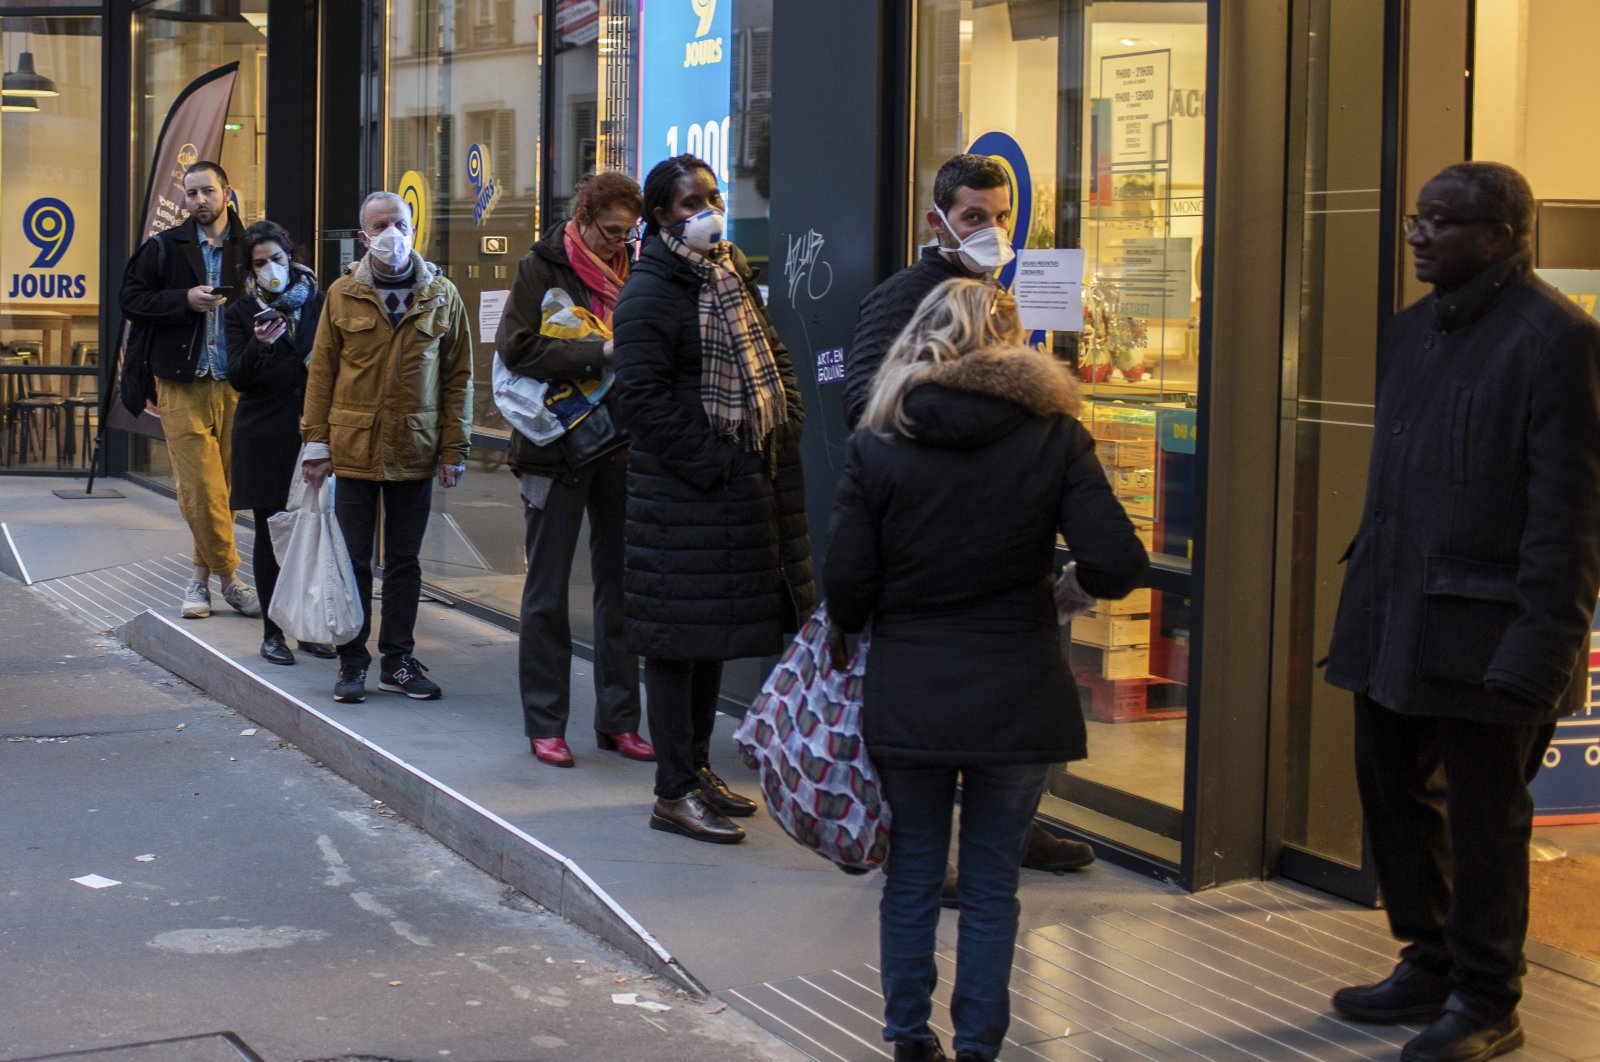 People wearing protective masks line up using social distancing to queue at a supermarket in Paris, Monday, March 16, 2020. (AP Photo)